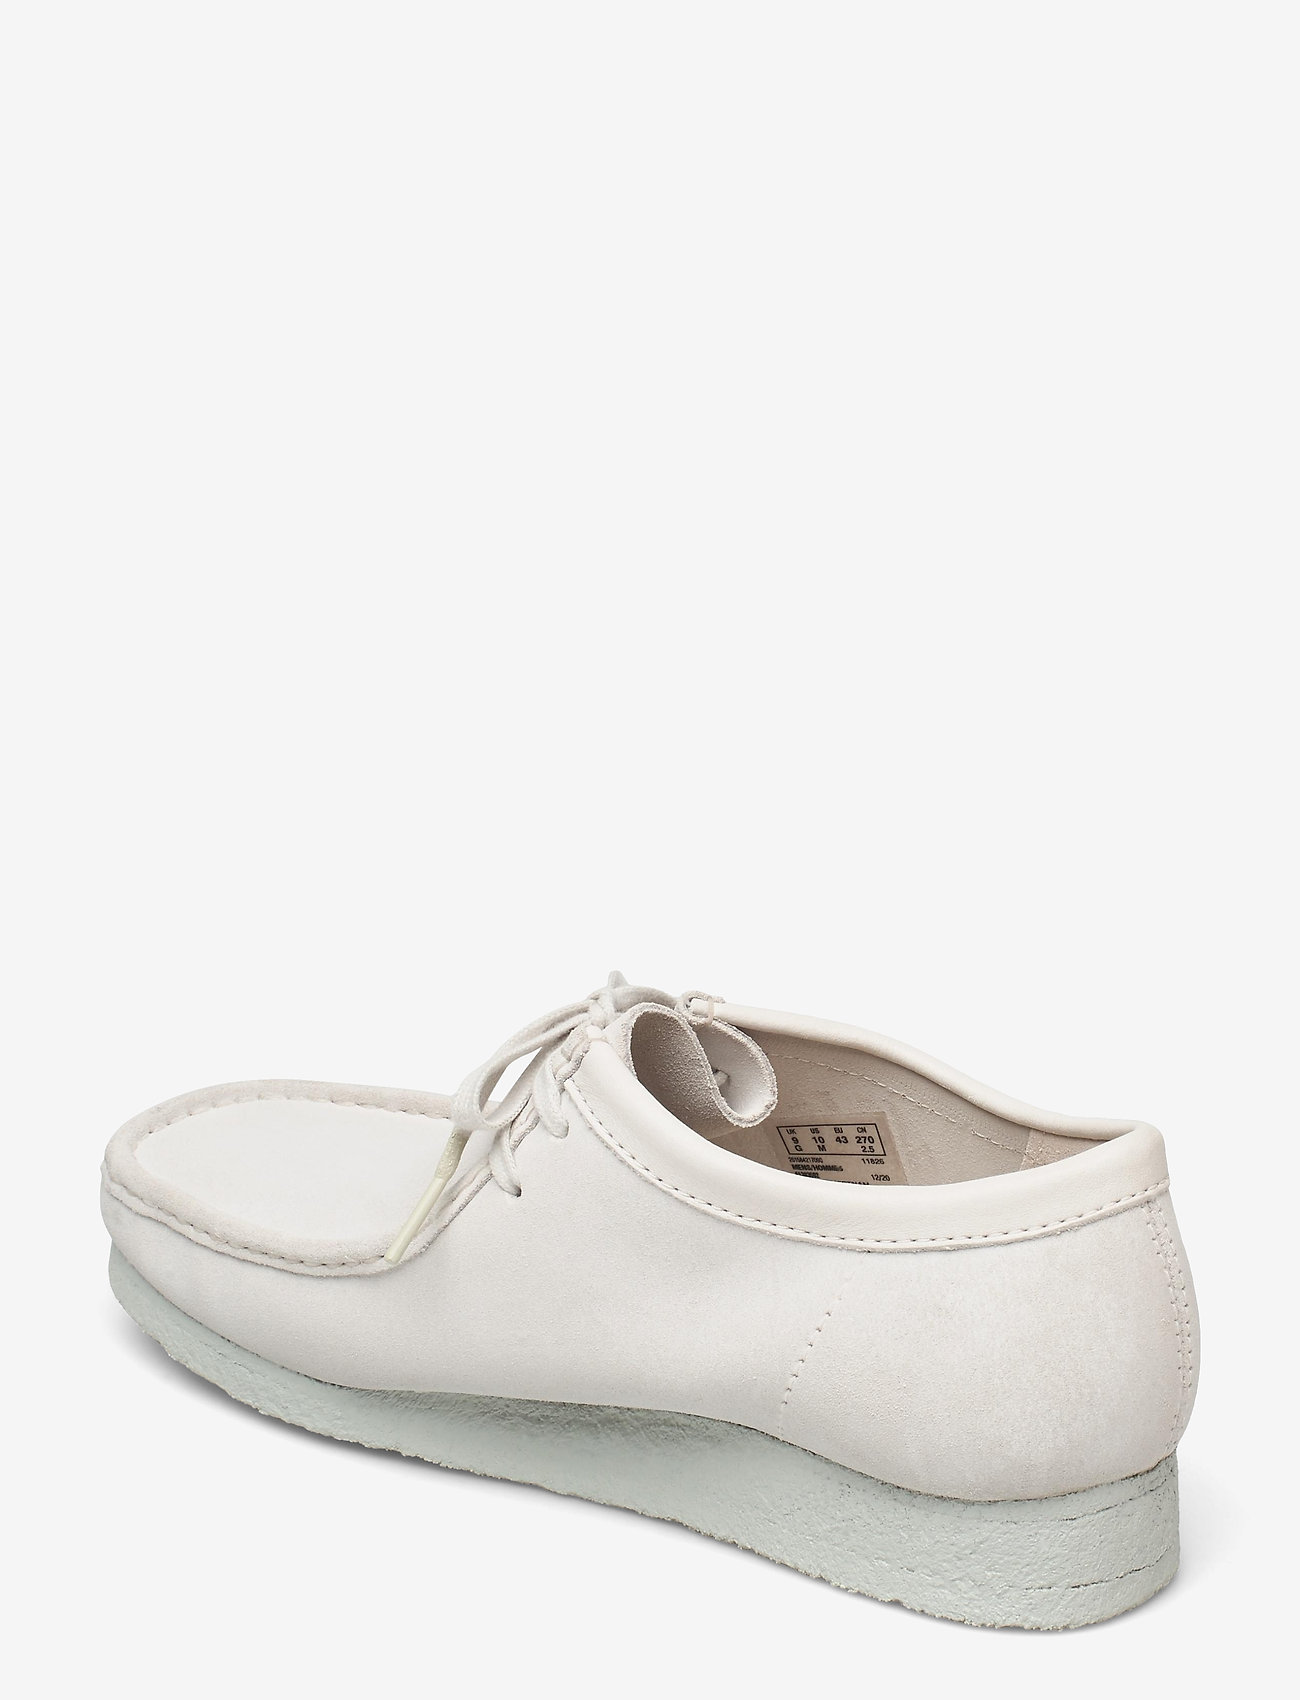 Clarks Originals - Wallabee - skor - white suede - 2